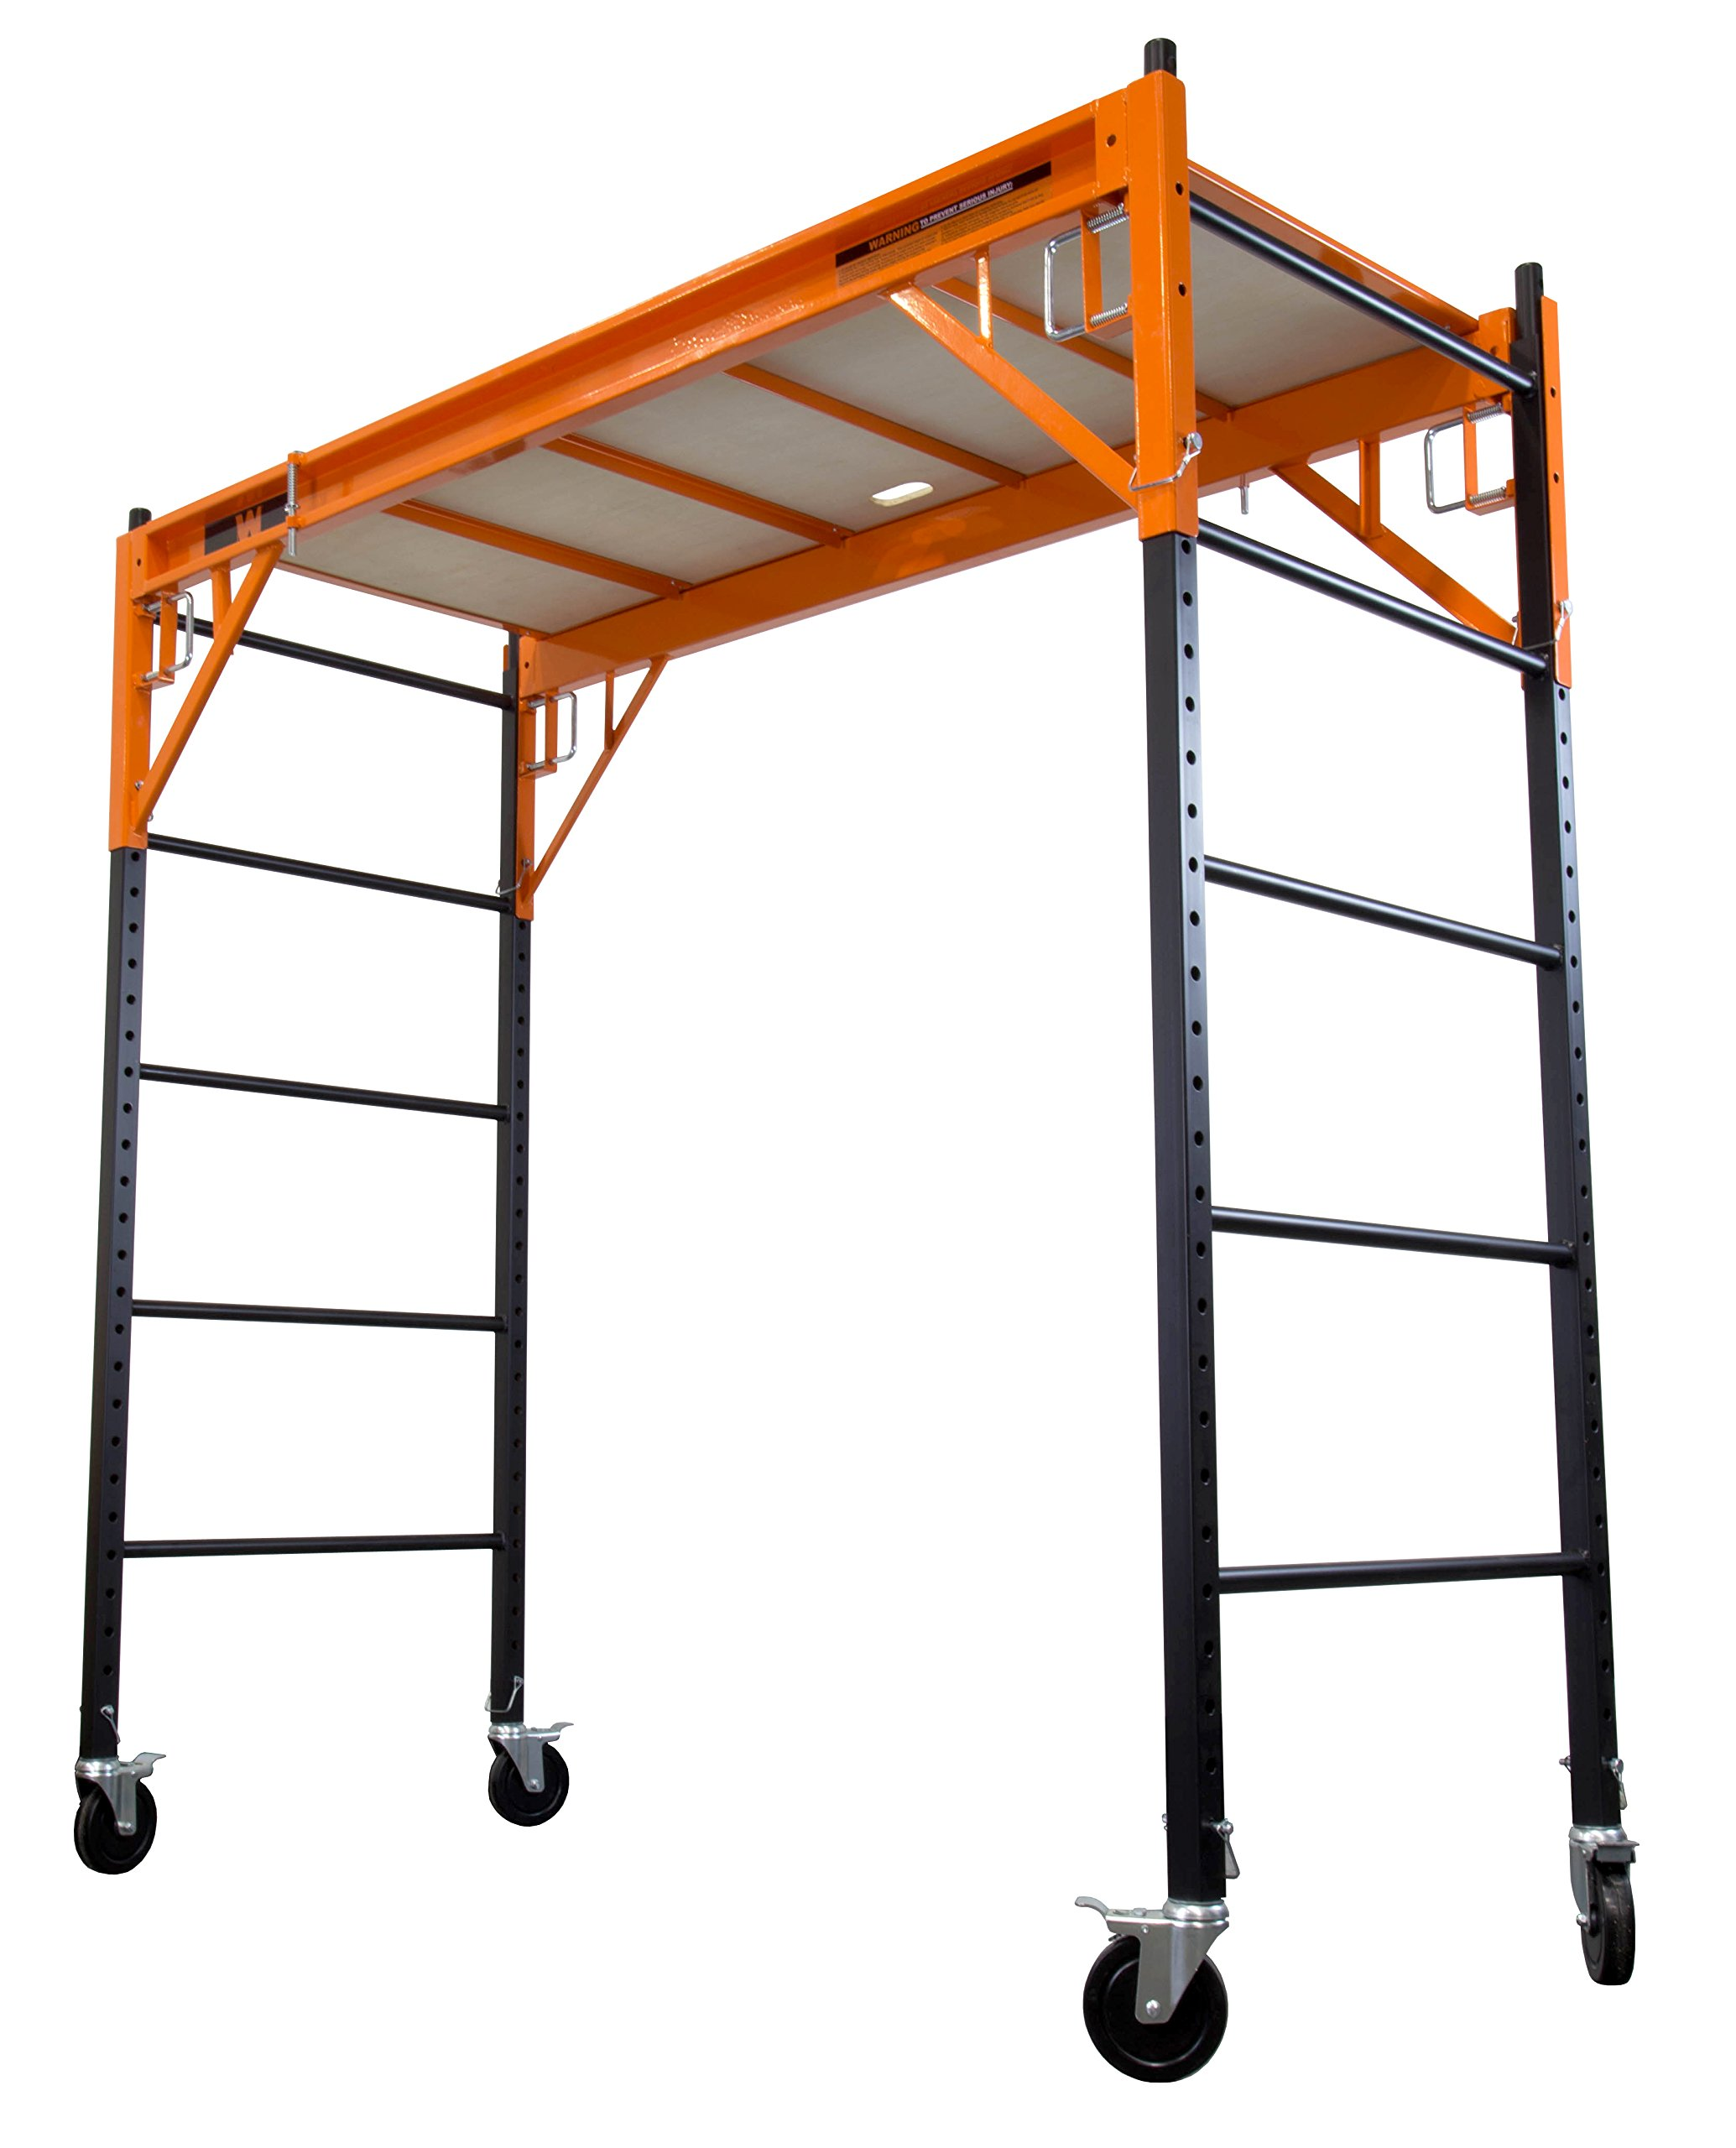 WEN 31109 1000 lb Capacity Rolling Industrial Scaffolding by WEN (Image #2)